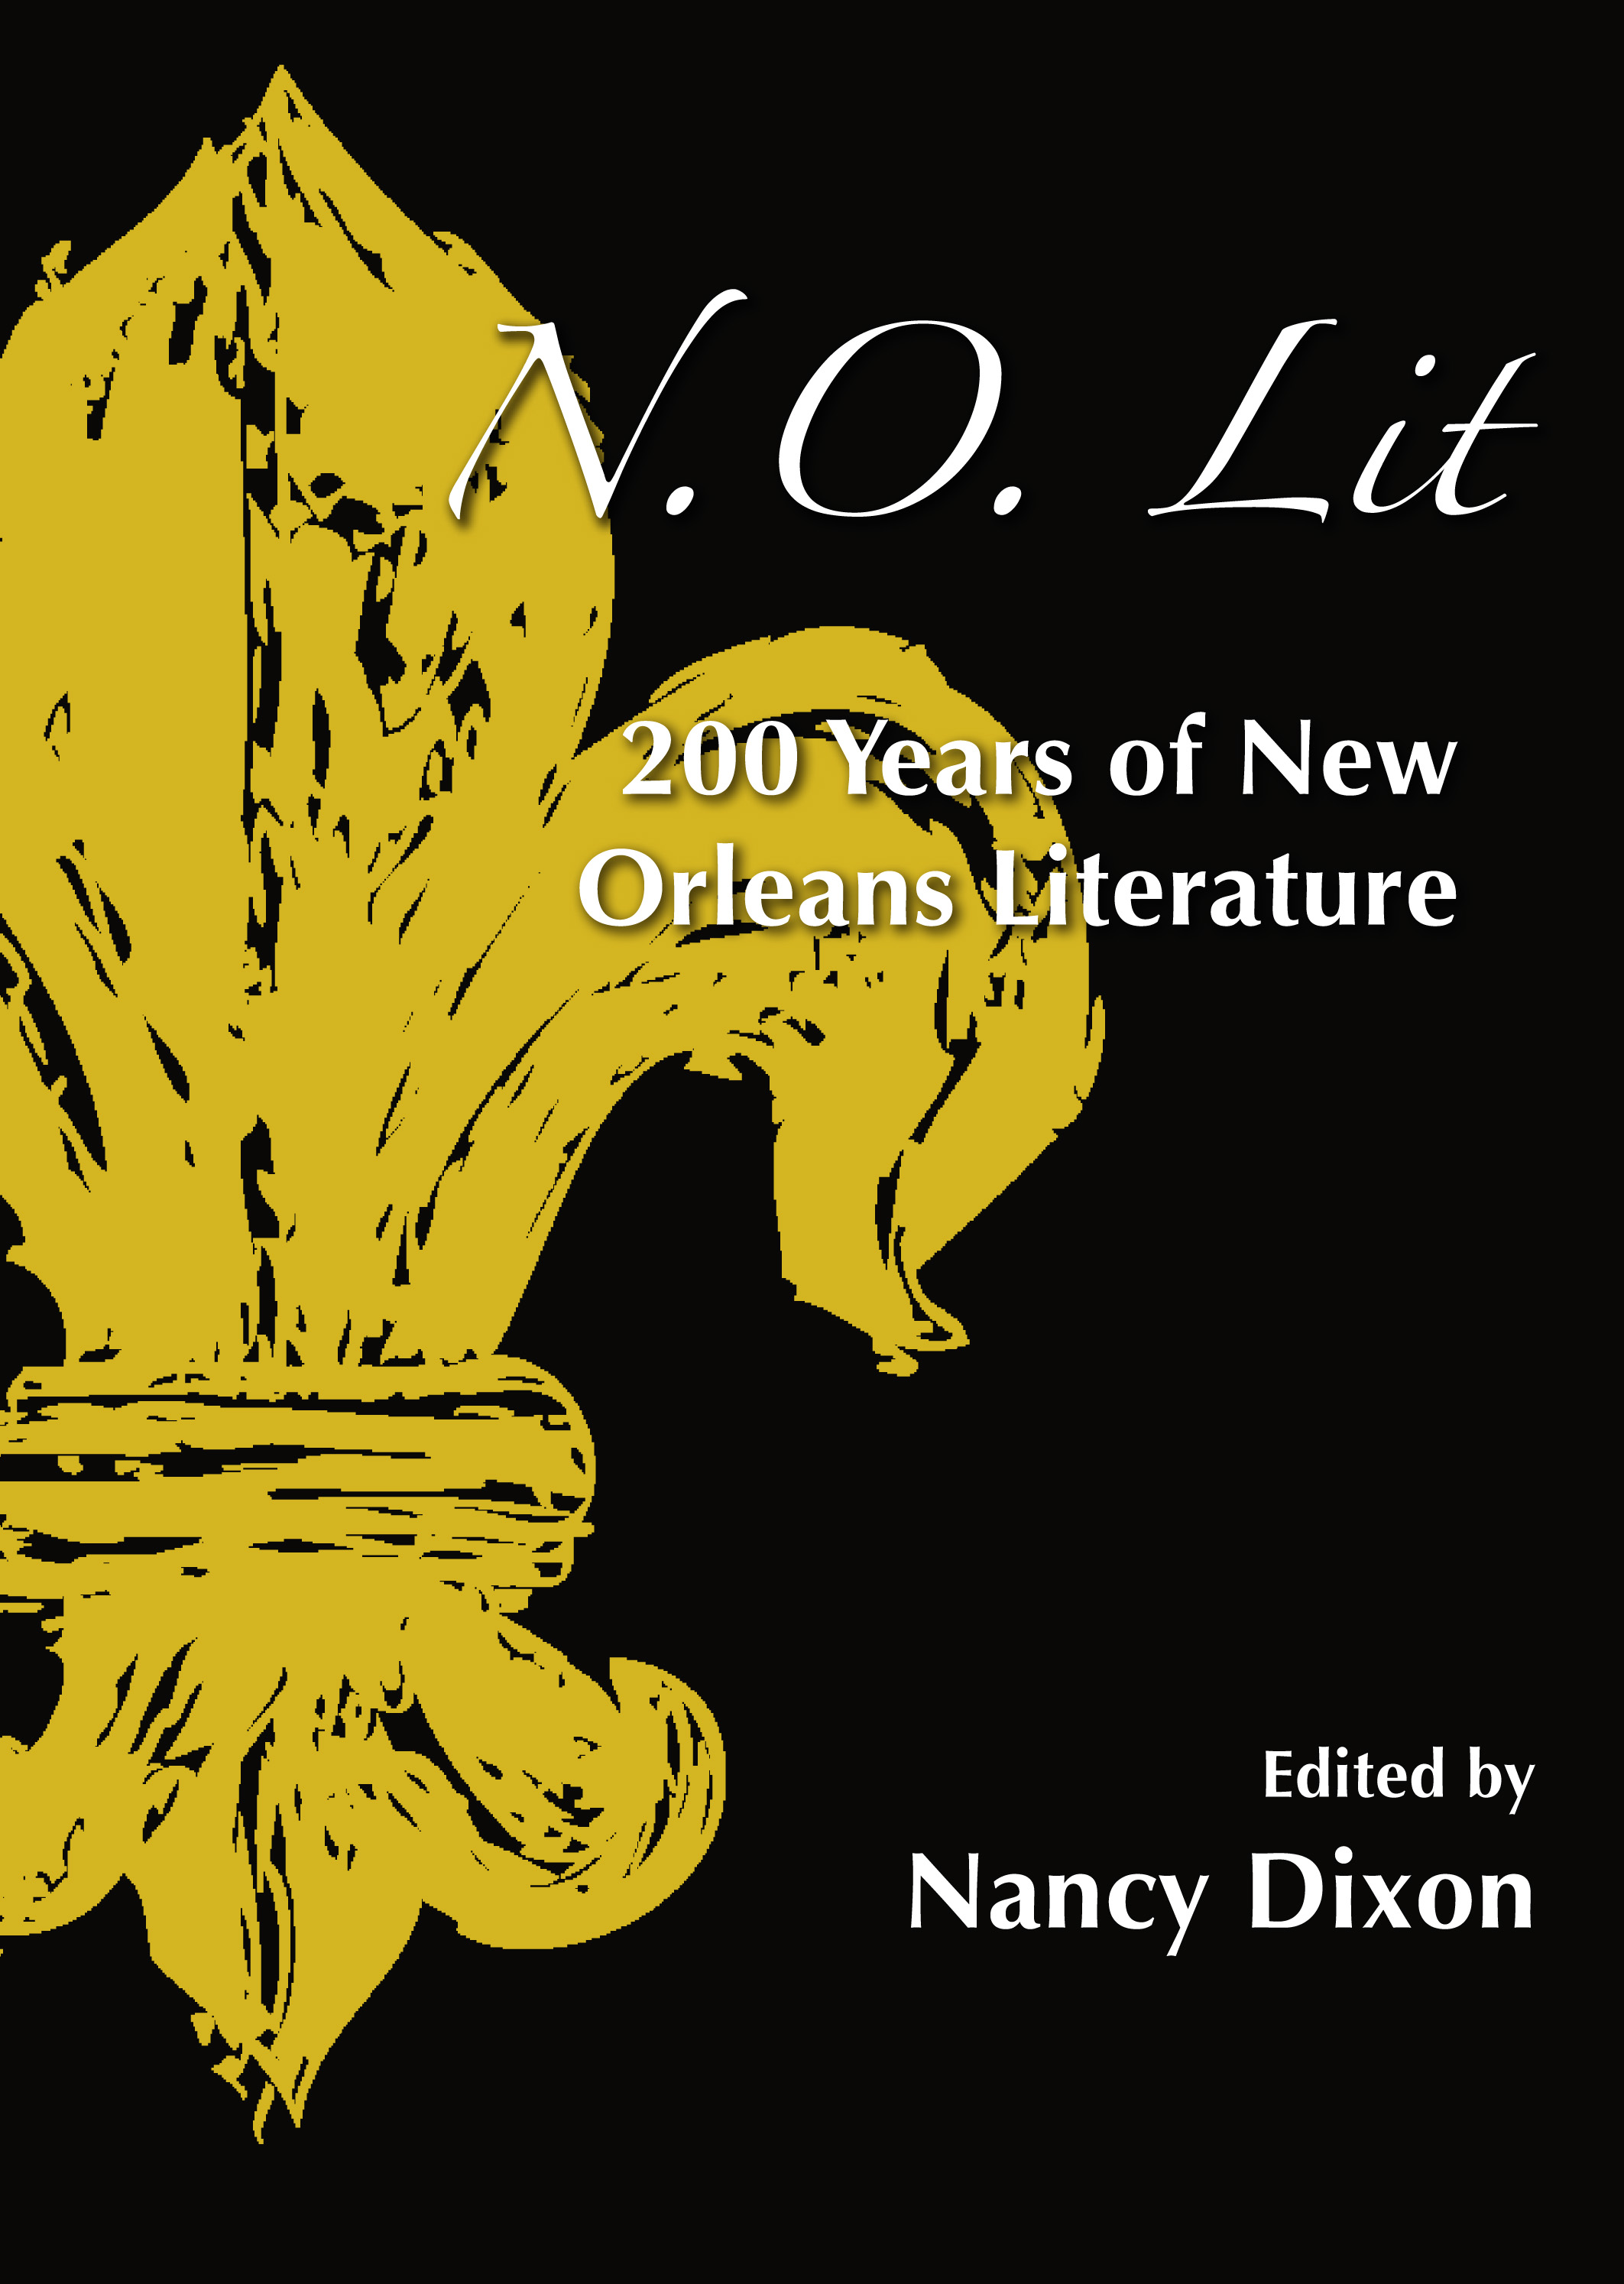 Lit En 200 Nancy Dixon 200 Years Of New Orleans Literature New Orleans Review